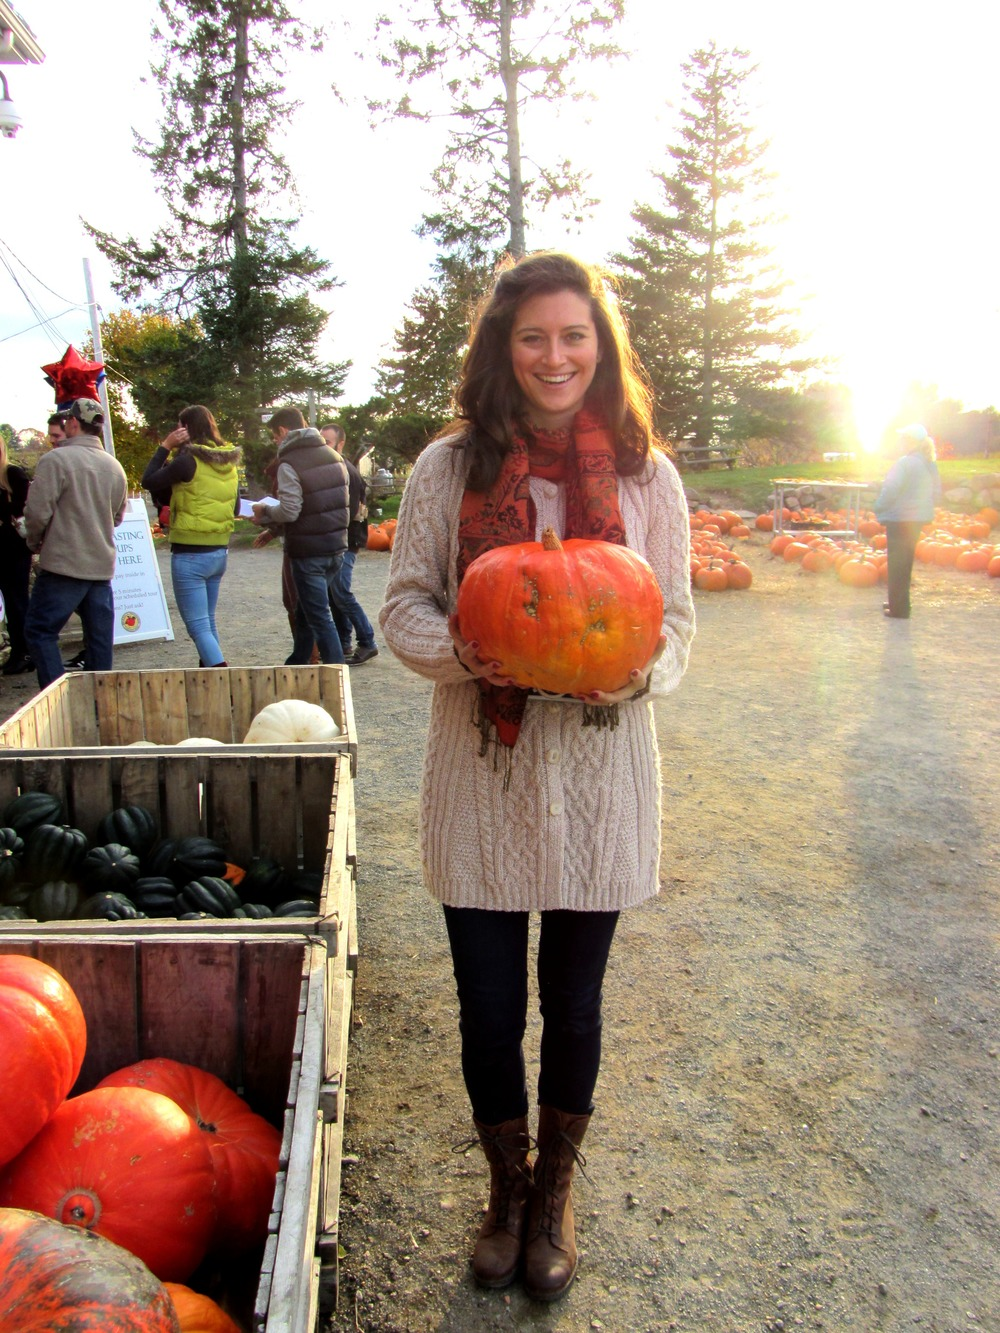 Russell Orchards, Ipswich, Massachusetts | Things to do on Massachusetts North Shore